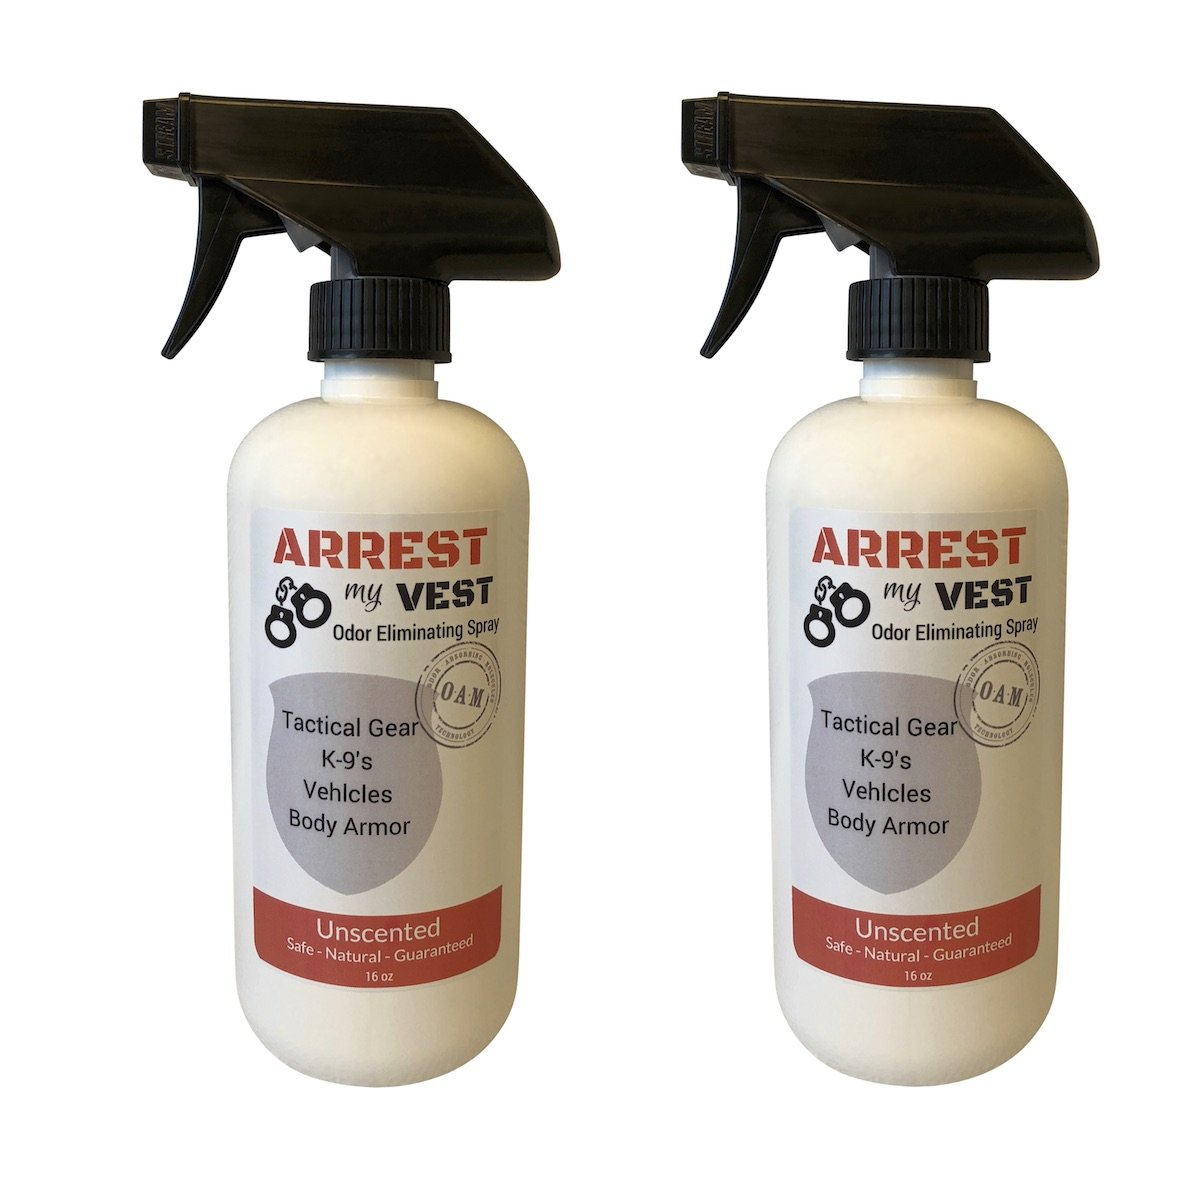 Arrest My Vest Military and Police Grade Odor Eliminating Spray for Body Armor, Tactical Gear. Safe on K9's, ballistic vests and all fabrics including leather - Unscented - 2 16 oz Bottles by Arrest My Vest